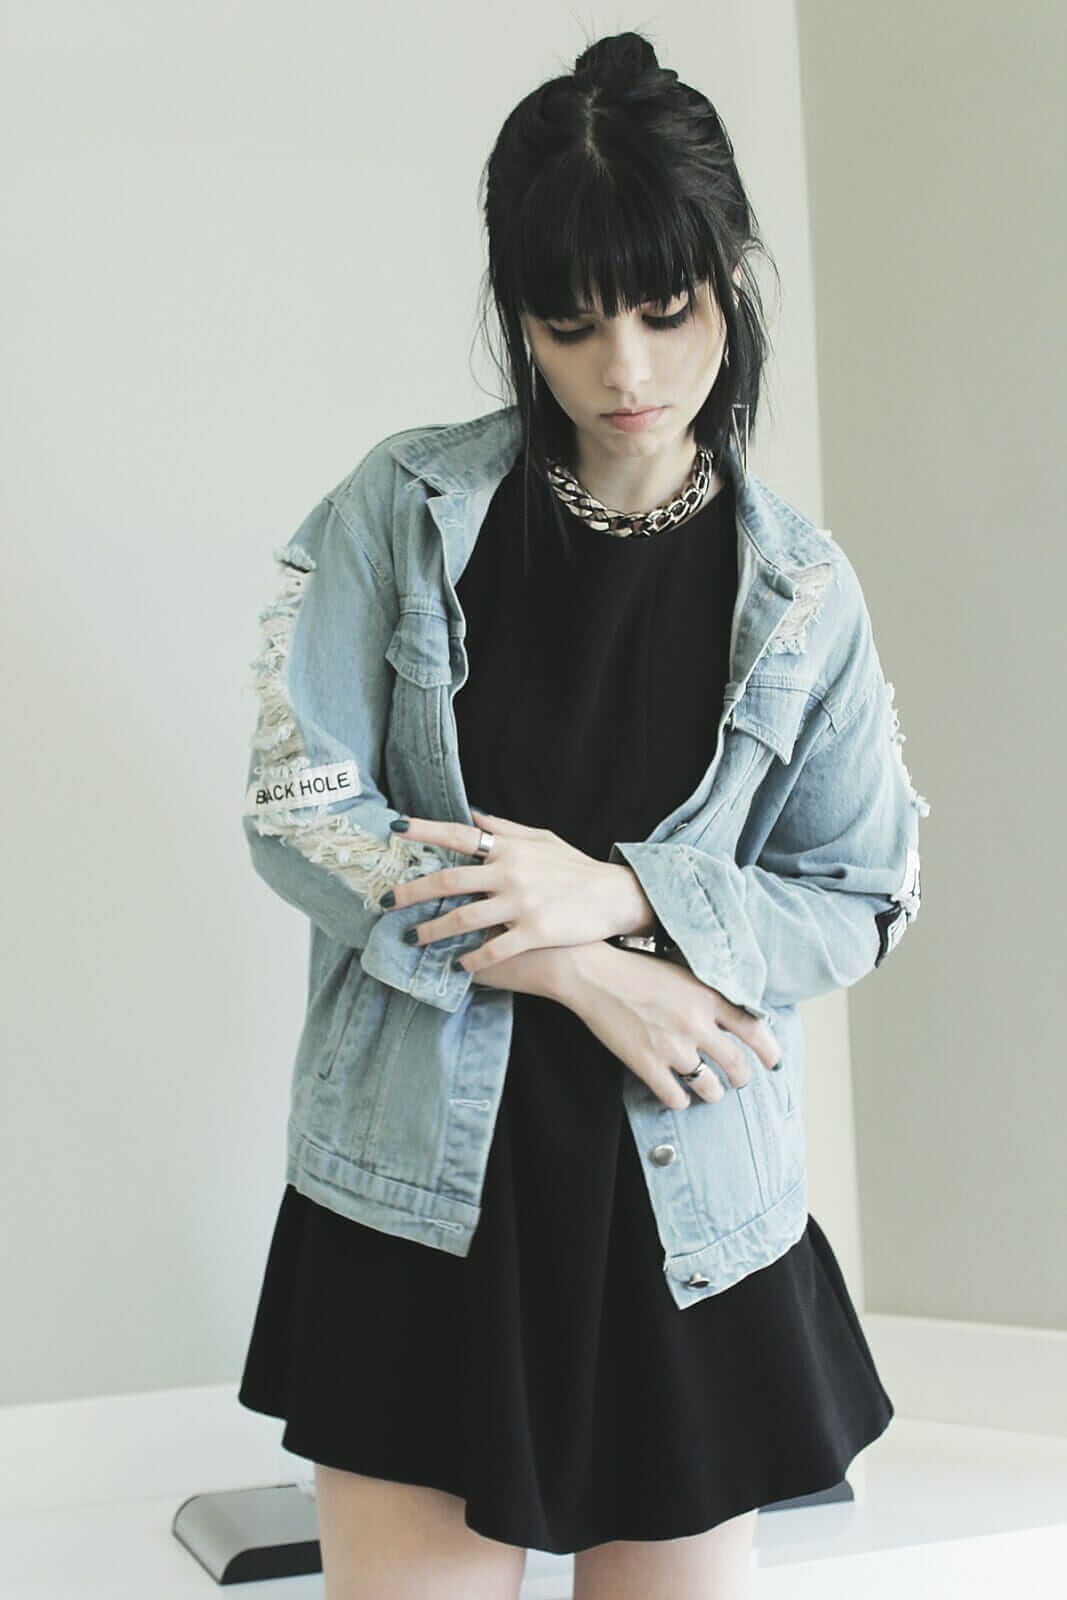 Denim jacket with patches, Chain necklace & Black skater dress